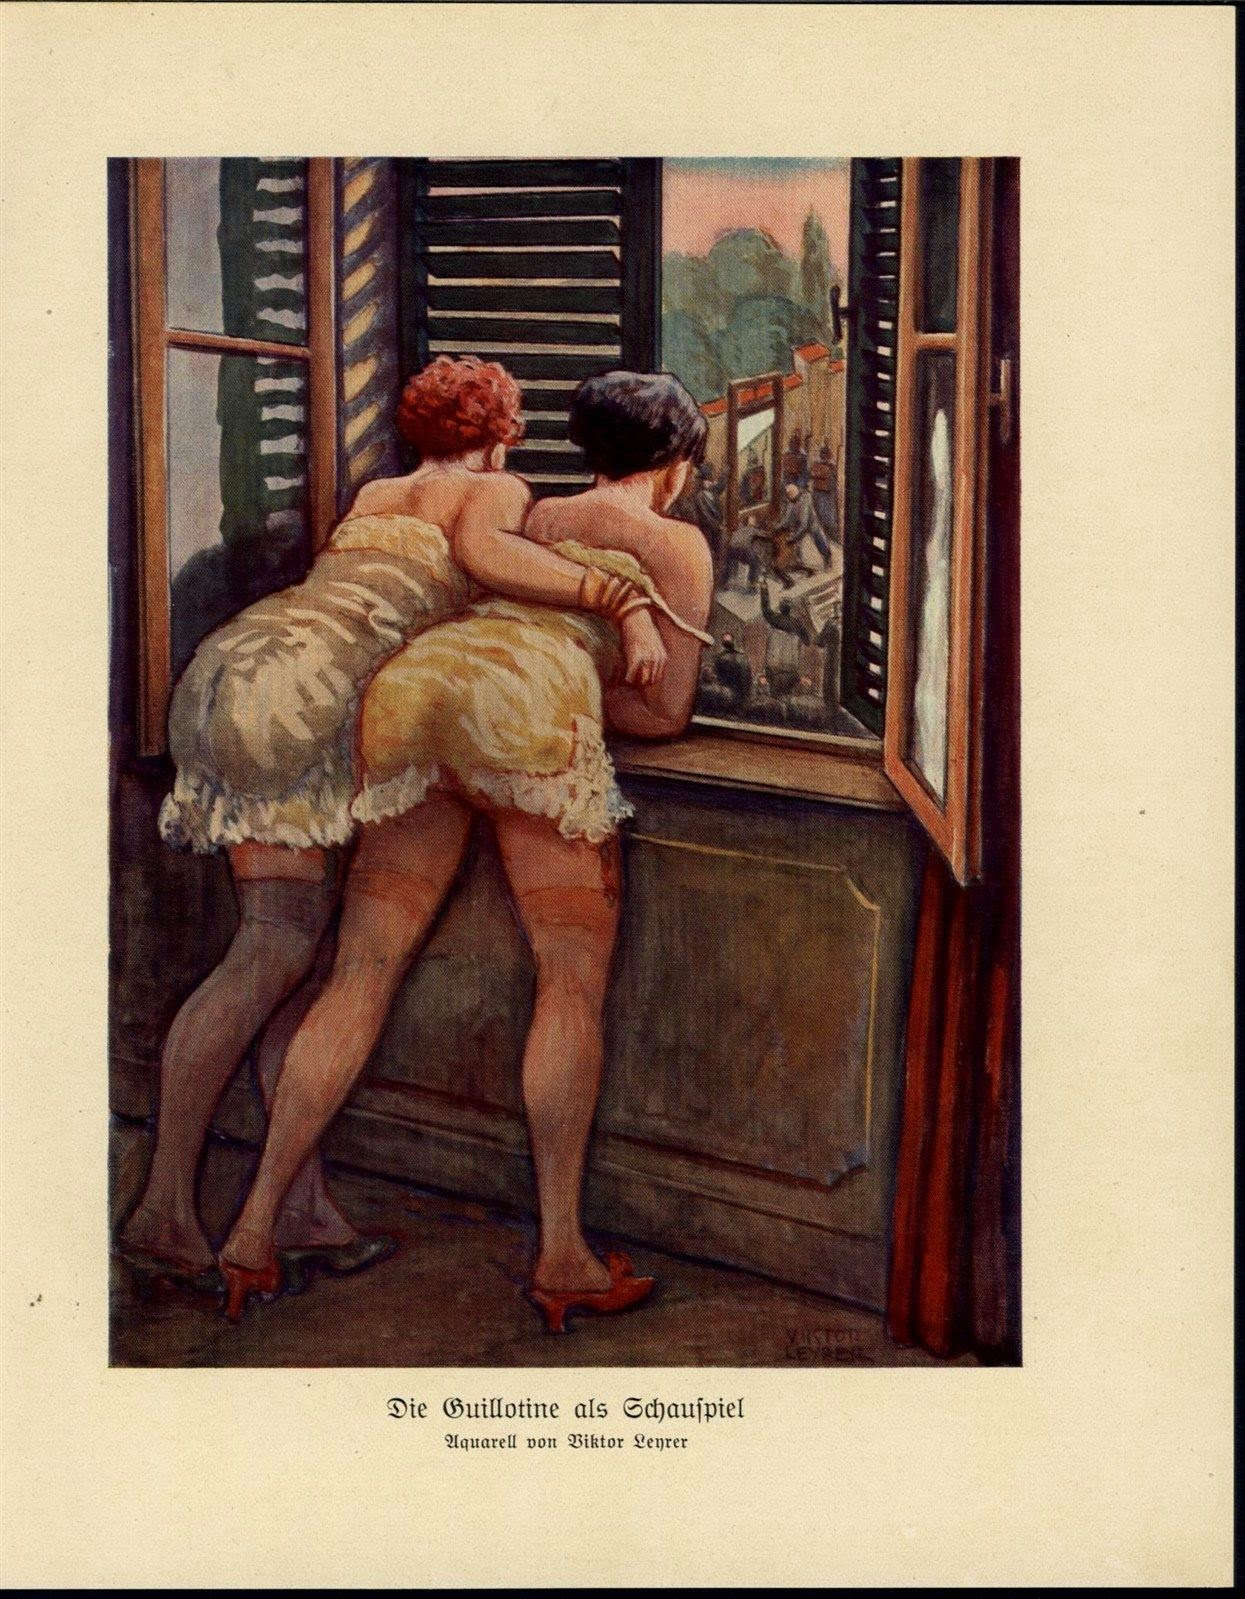 Two Women Watching Guillotine Execution from Window - 1931 Art Deco Print